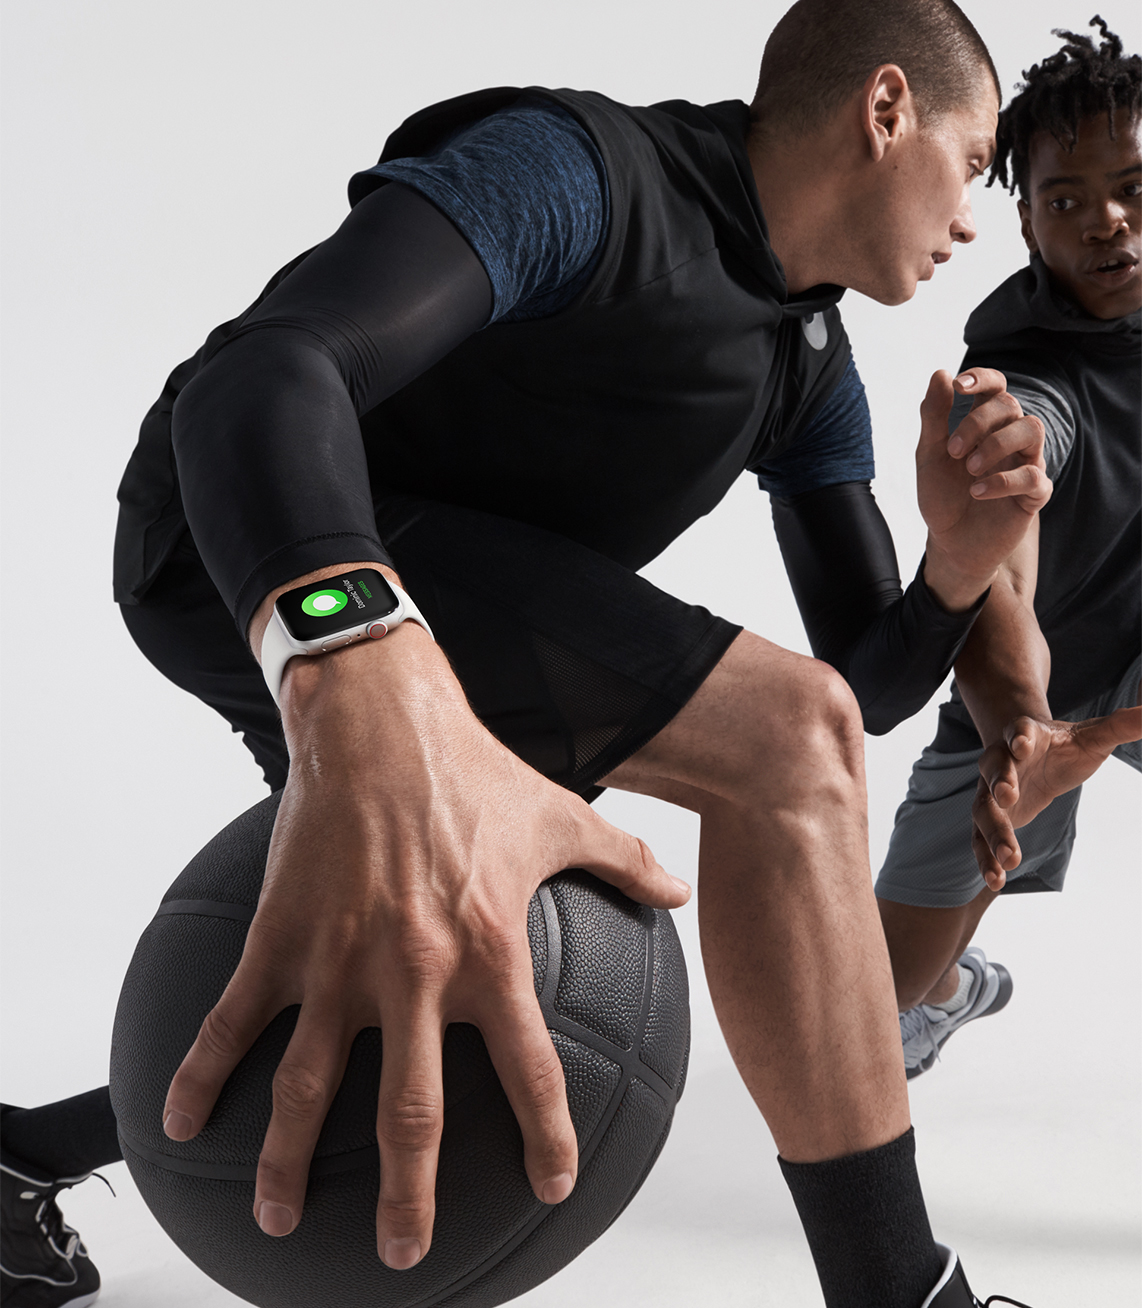 https://www.apple.com/newsroom/images/product/watch/lifestyle/apple-watch_series4_basketball-lifestyle_09122018_inline.jpg.large_2x.jpg